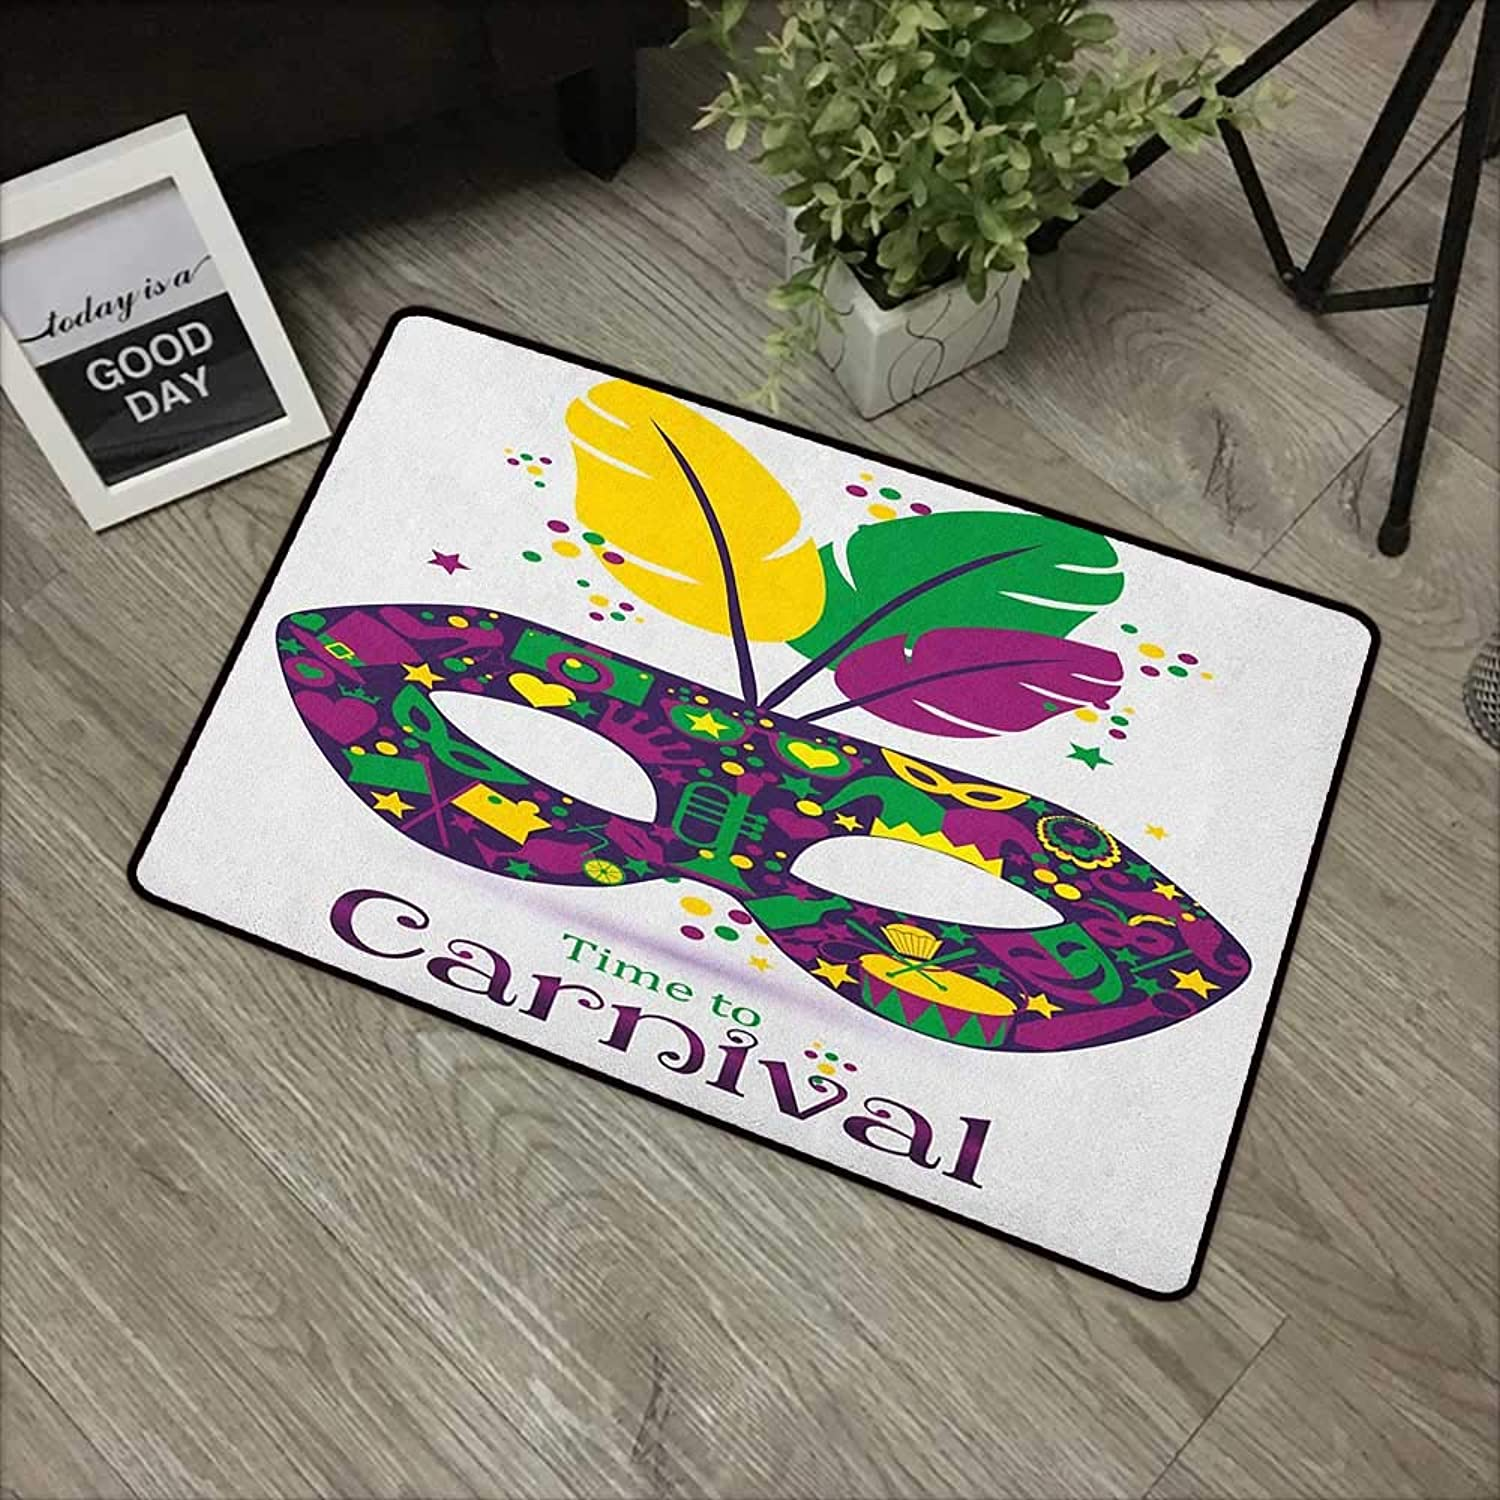 Clear Printed Pattern Door mat W35 x L59 INCH Mardi Gras,Time to Carnival Themed Design Mask with Carnival Icons and Feathers, Magenta Green Yellow Non-Slip Door Mat Carpet